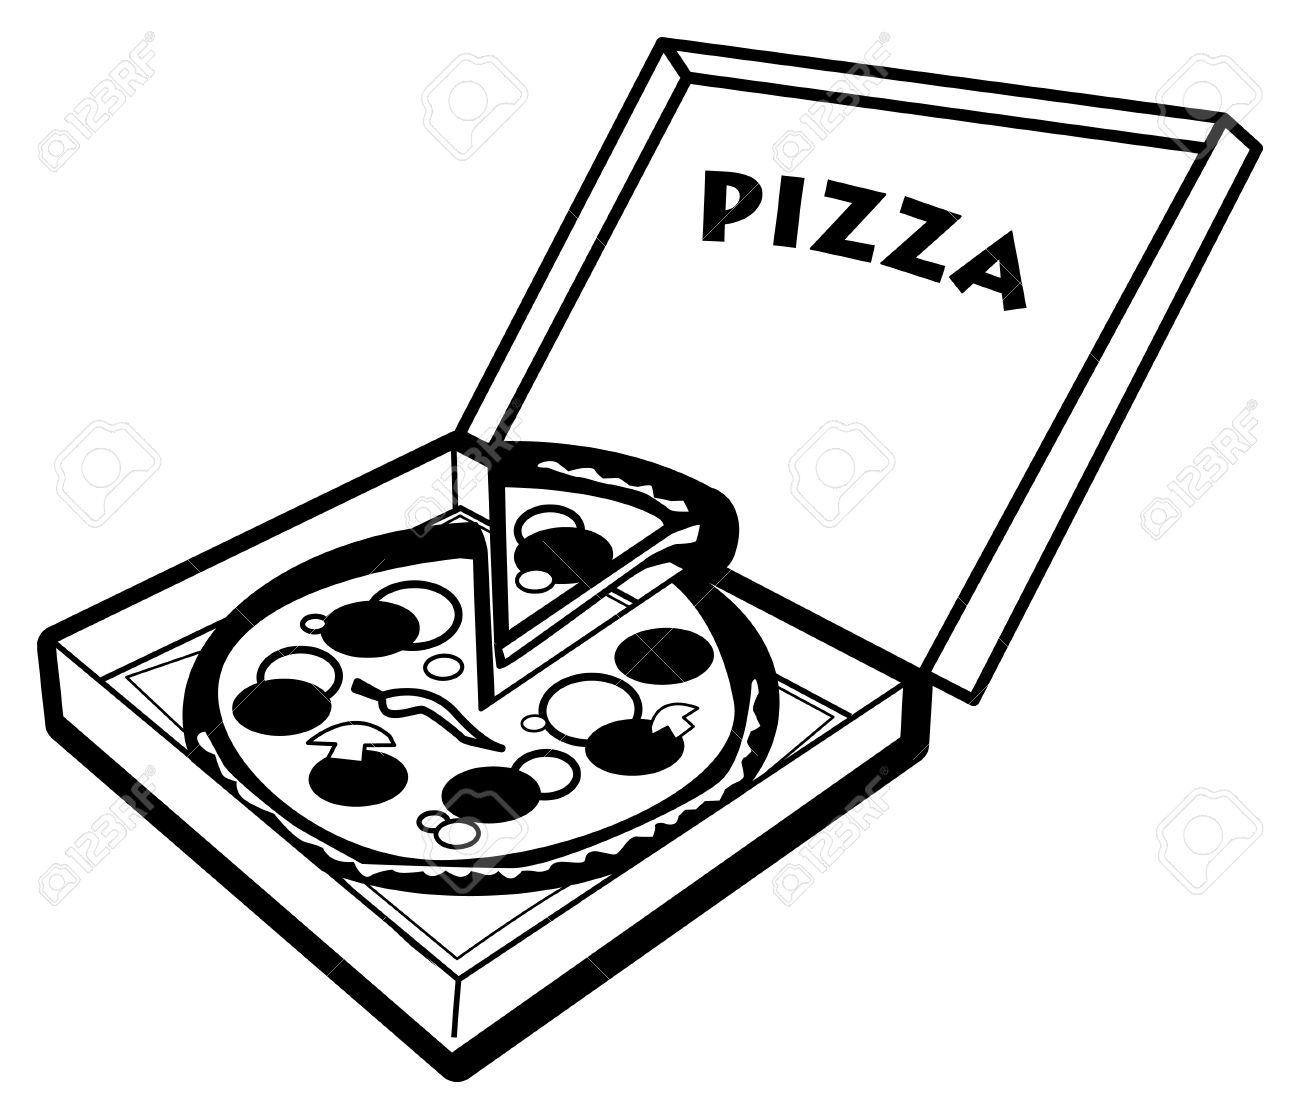 Best Pizza Clipart Black And White #6402 - Clipartion.com